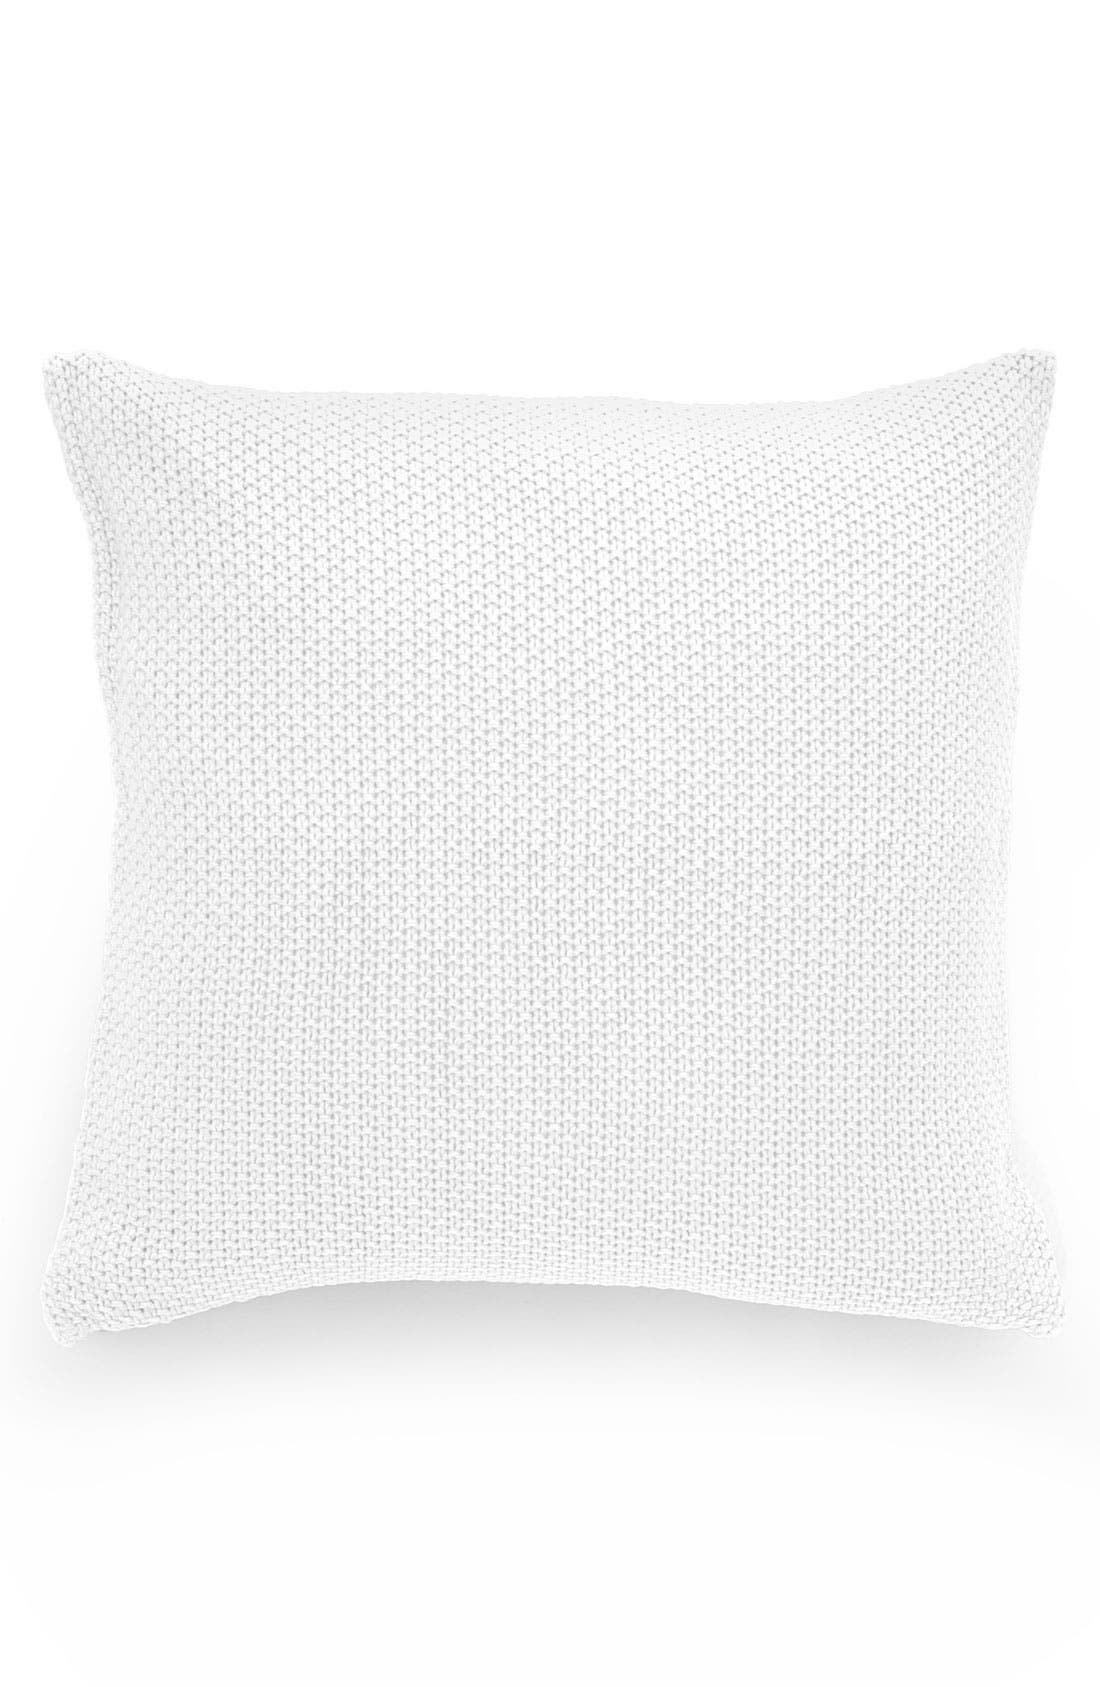 Main Image - Donna Karan 'The Essential' Euro Pillow Sham